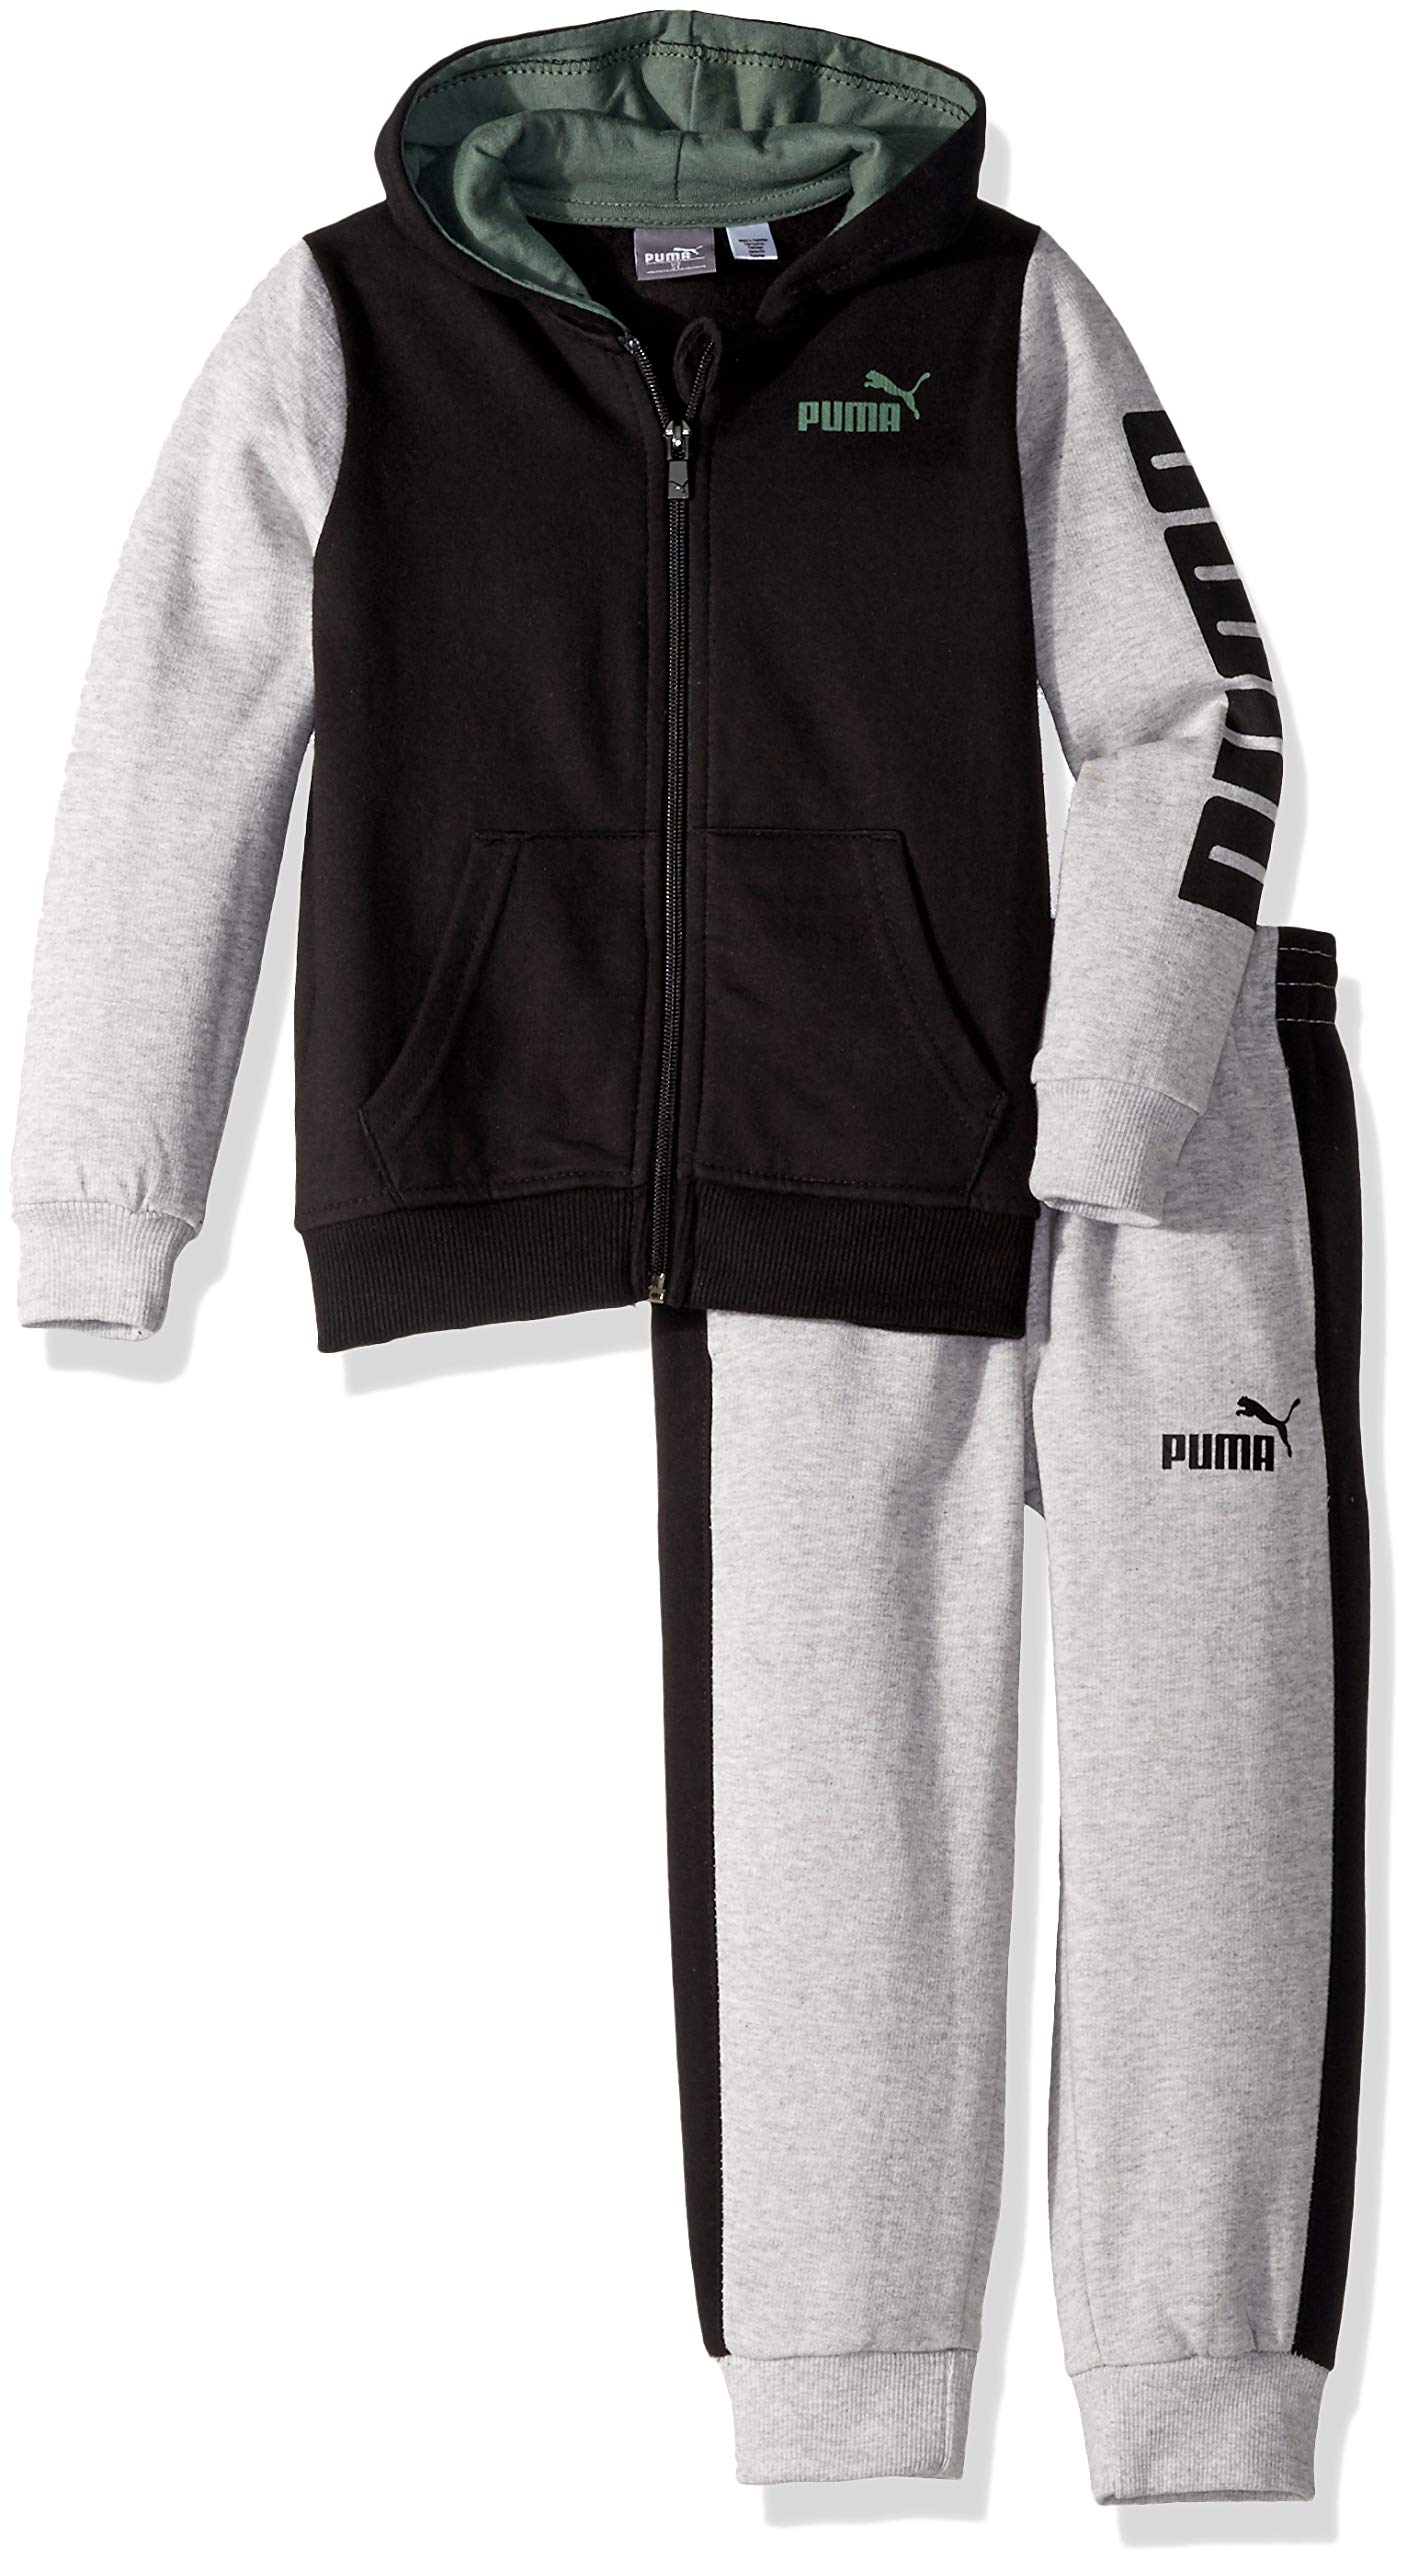 PUMA Toddler Boys' Fleece Zip Up Hoodie Set, Black, 2T by PUMA